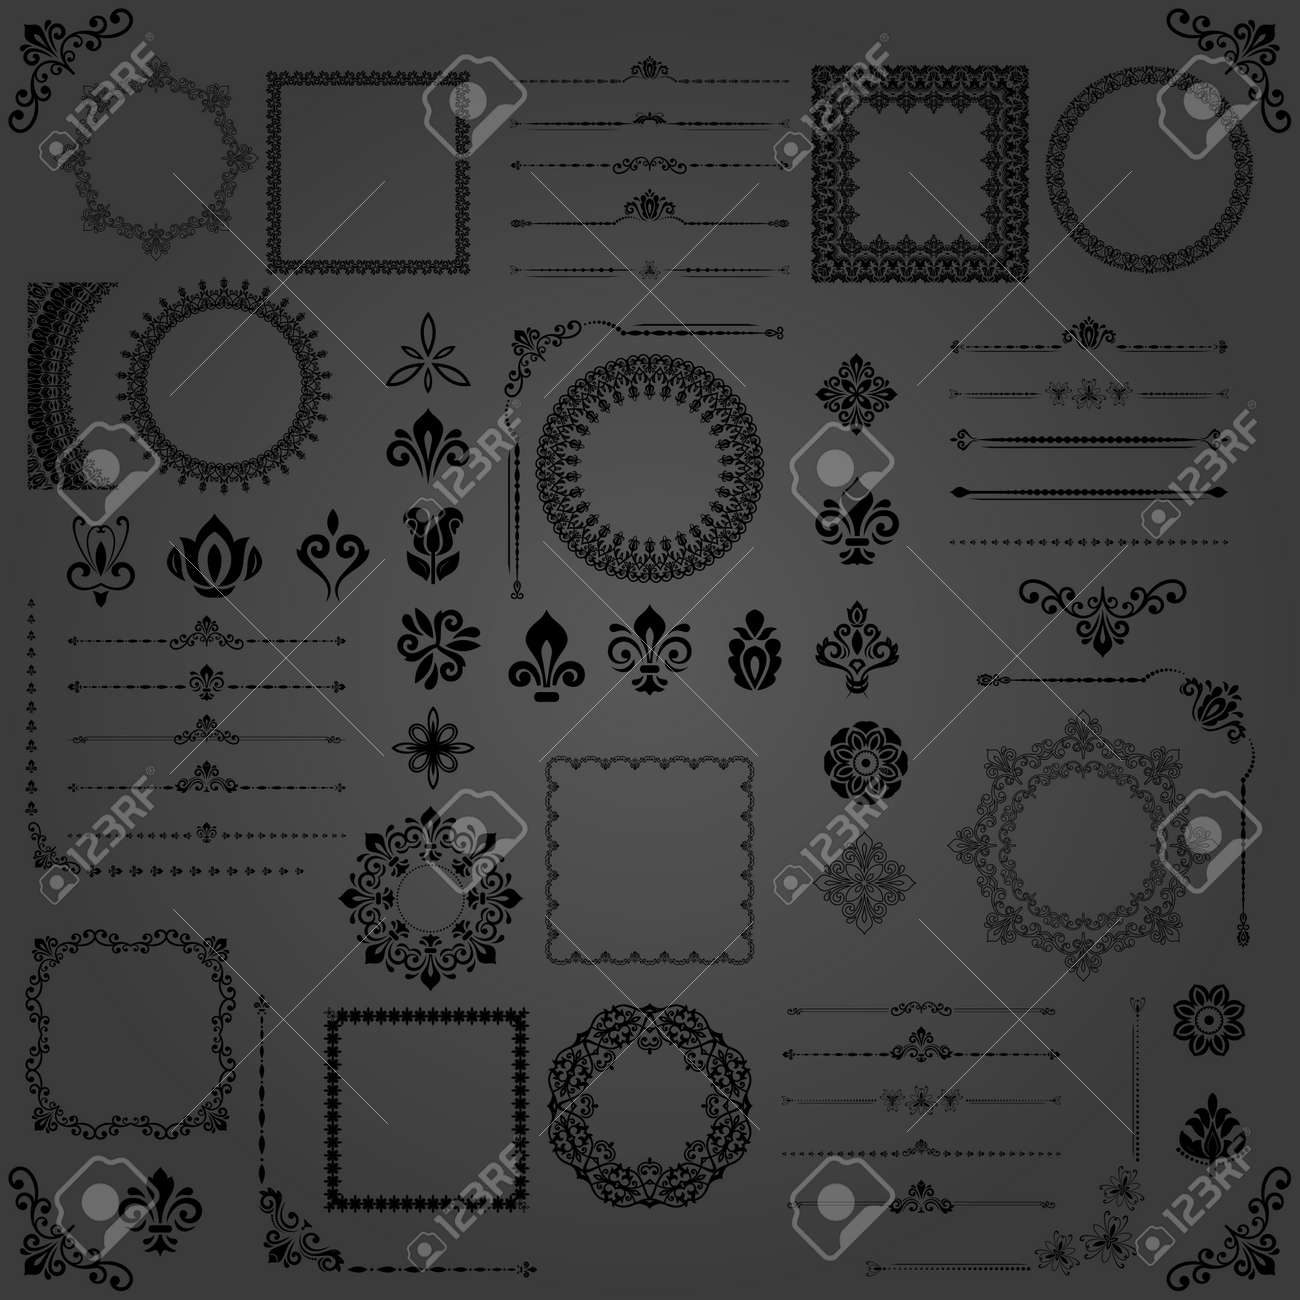 Vintage Set of Horizontal, Square and Round Elements - 167039479